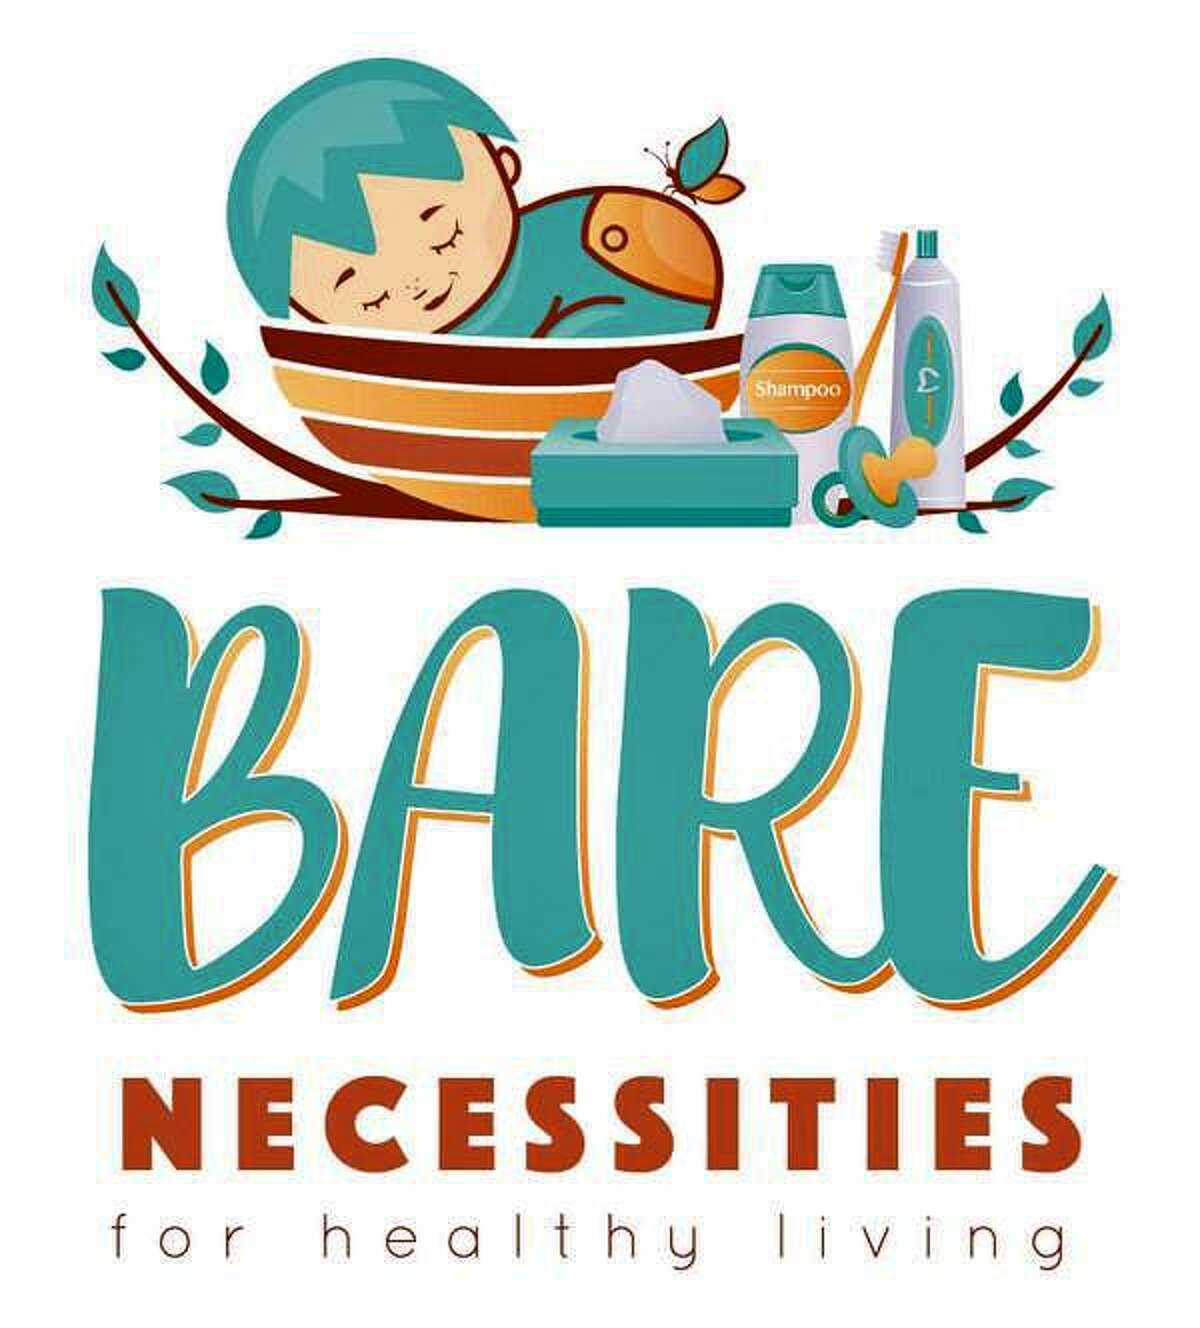 The not-for-profit organization Bare Necessities provides diapers and wipes to local shoreline communities through food pantries, social service agencies and other community service organizations.